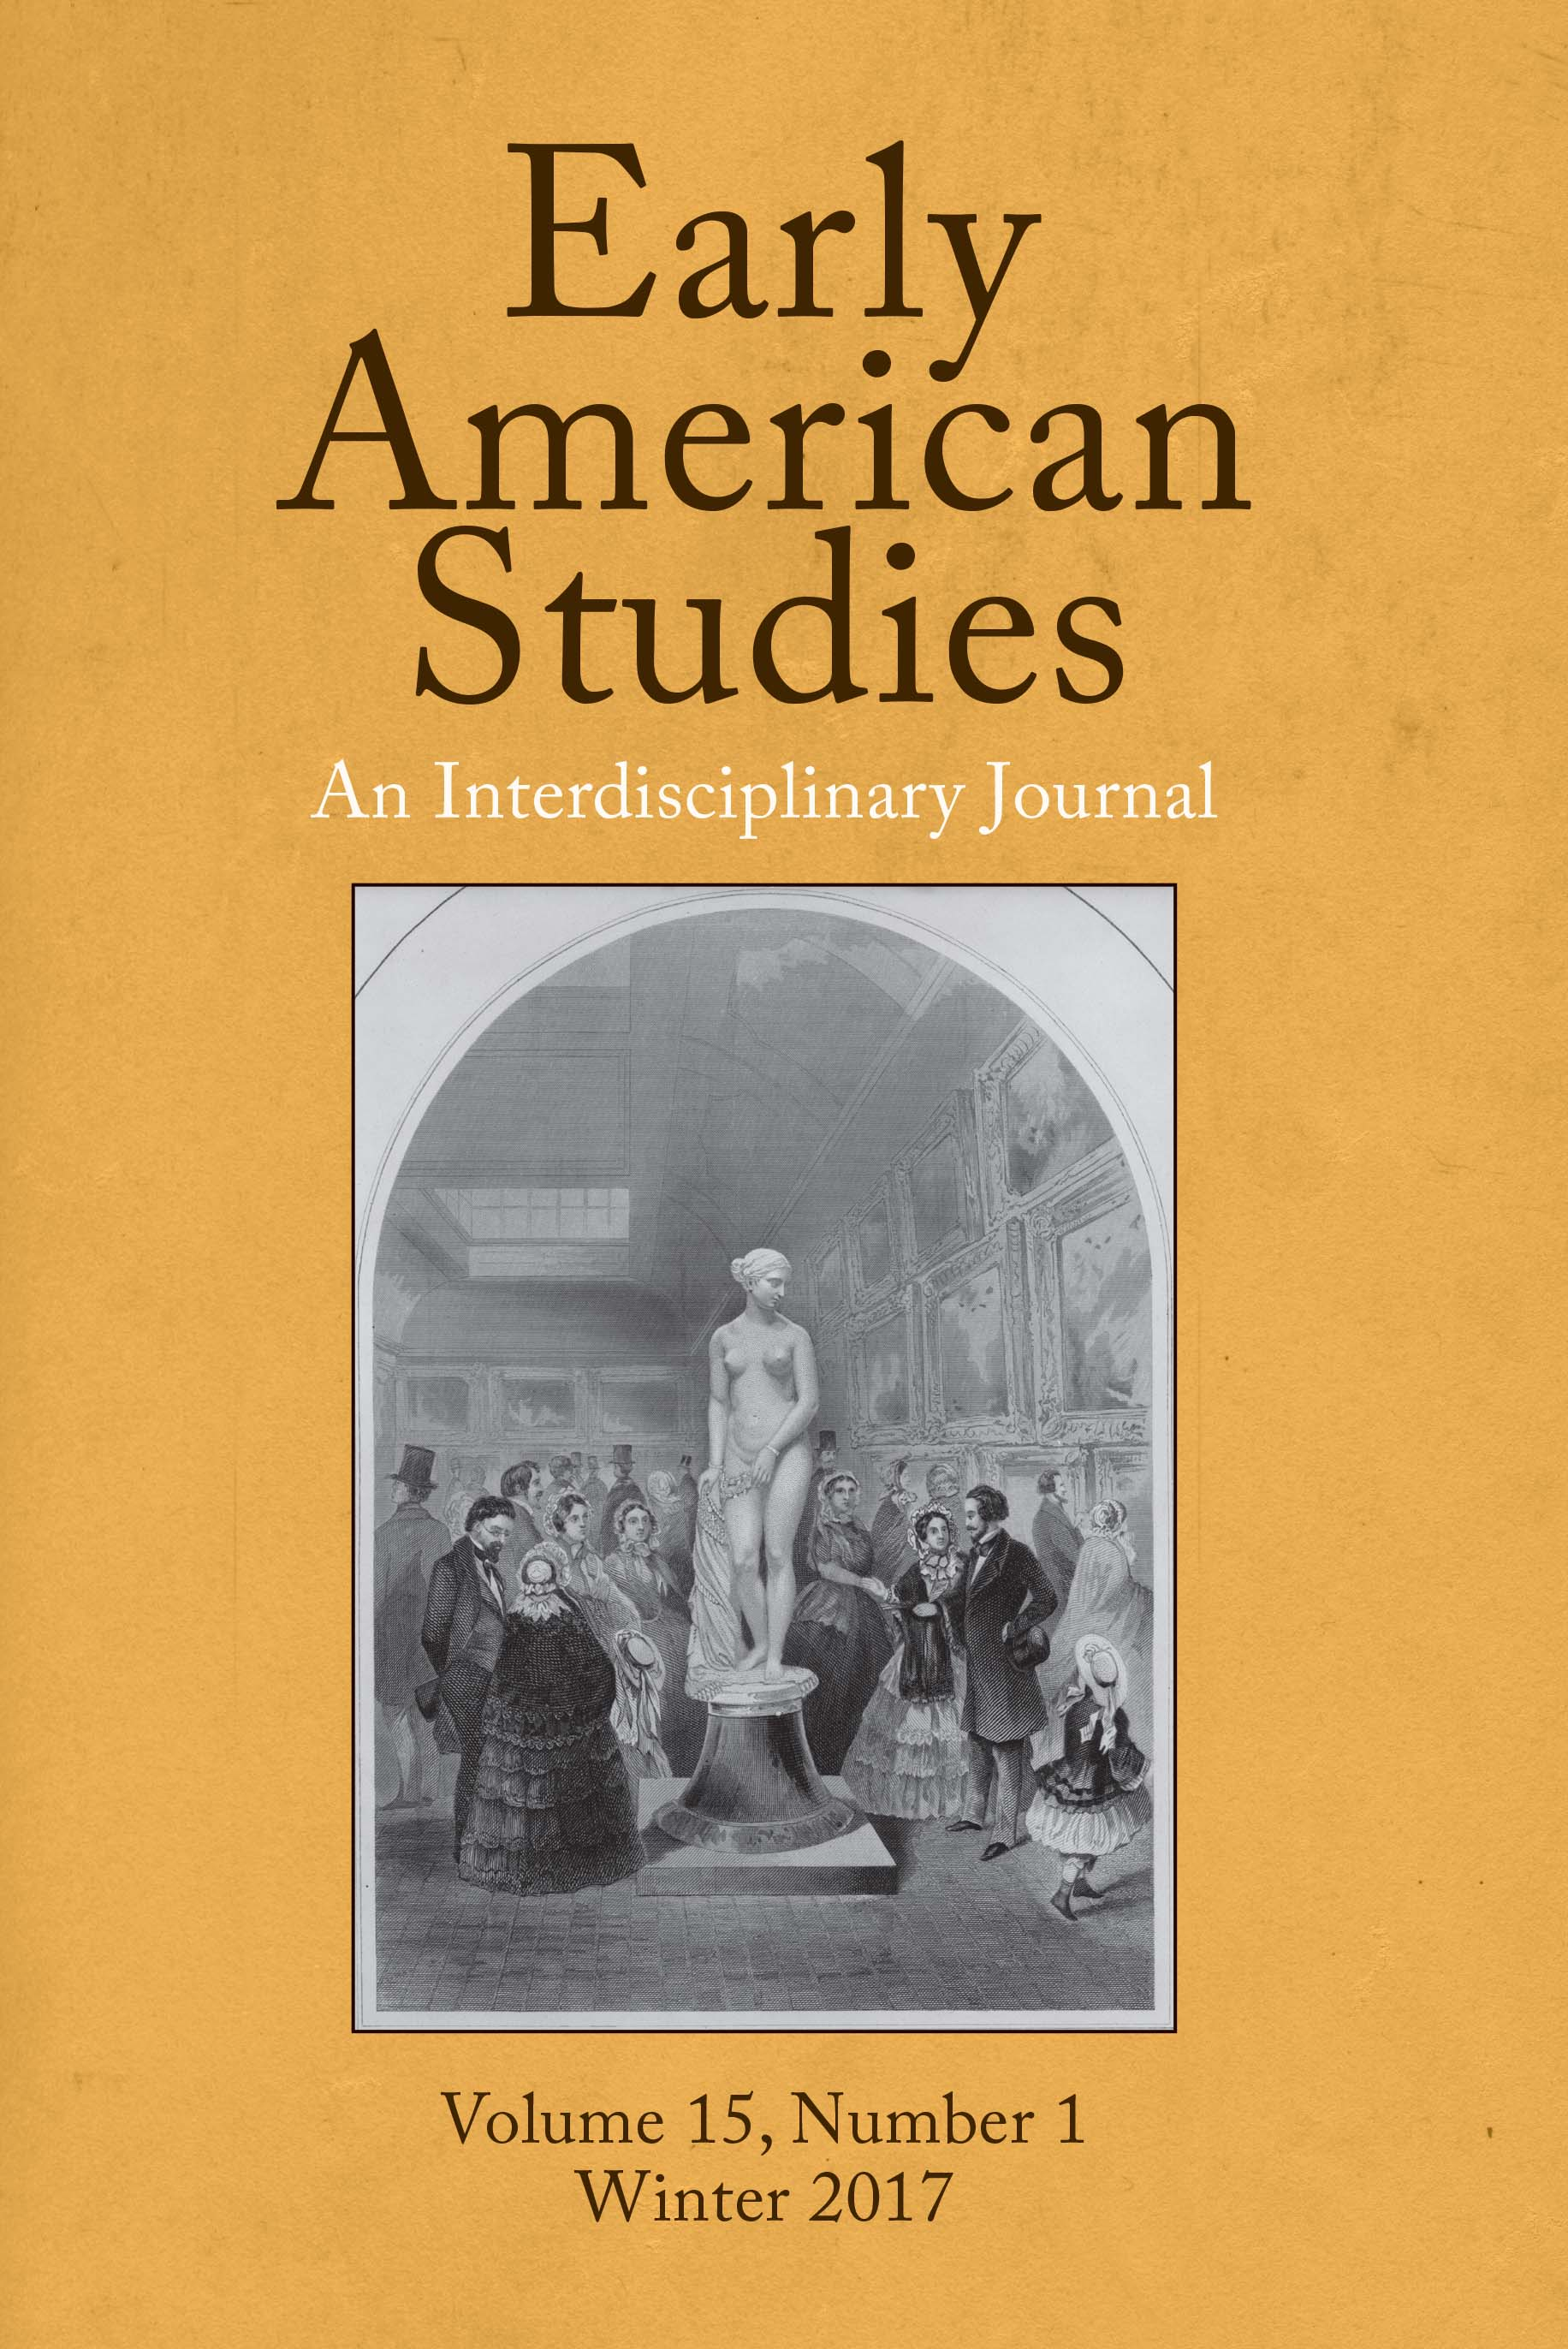 Early American Studies Spring 2021 Volume 19.2